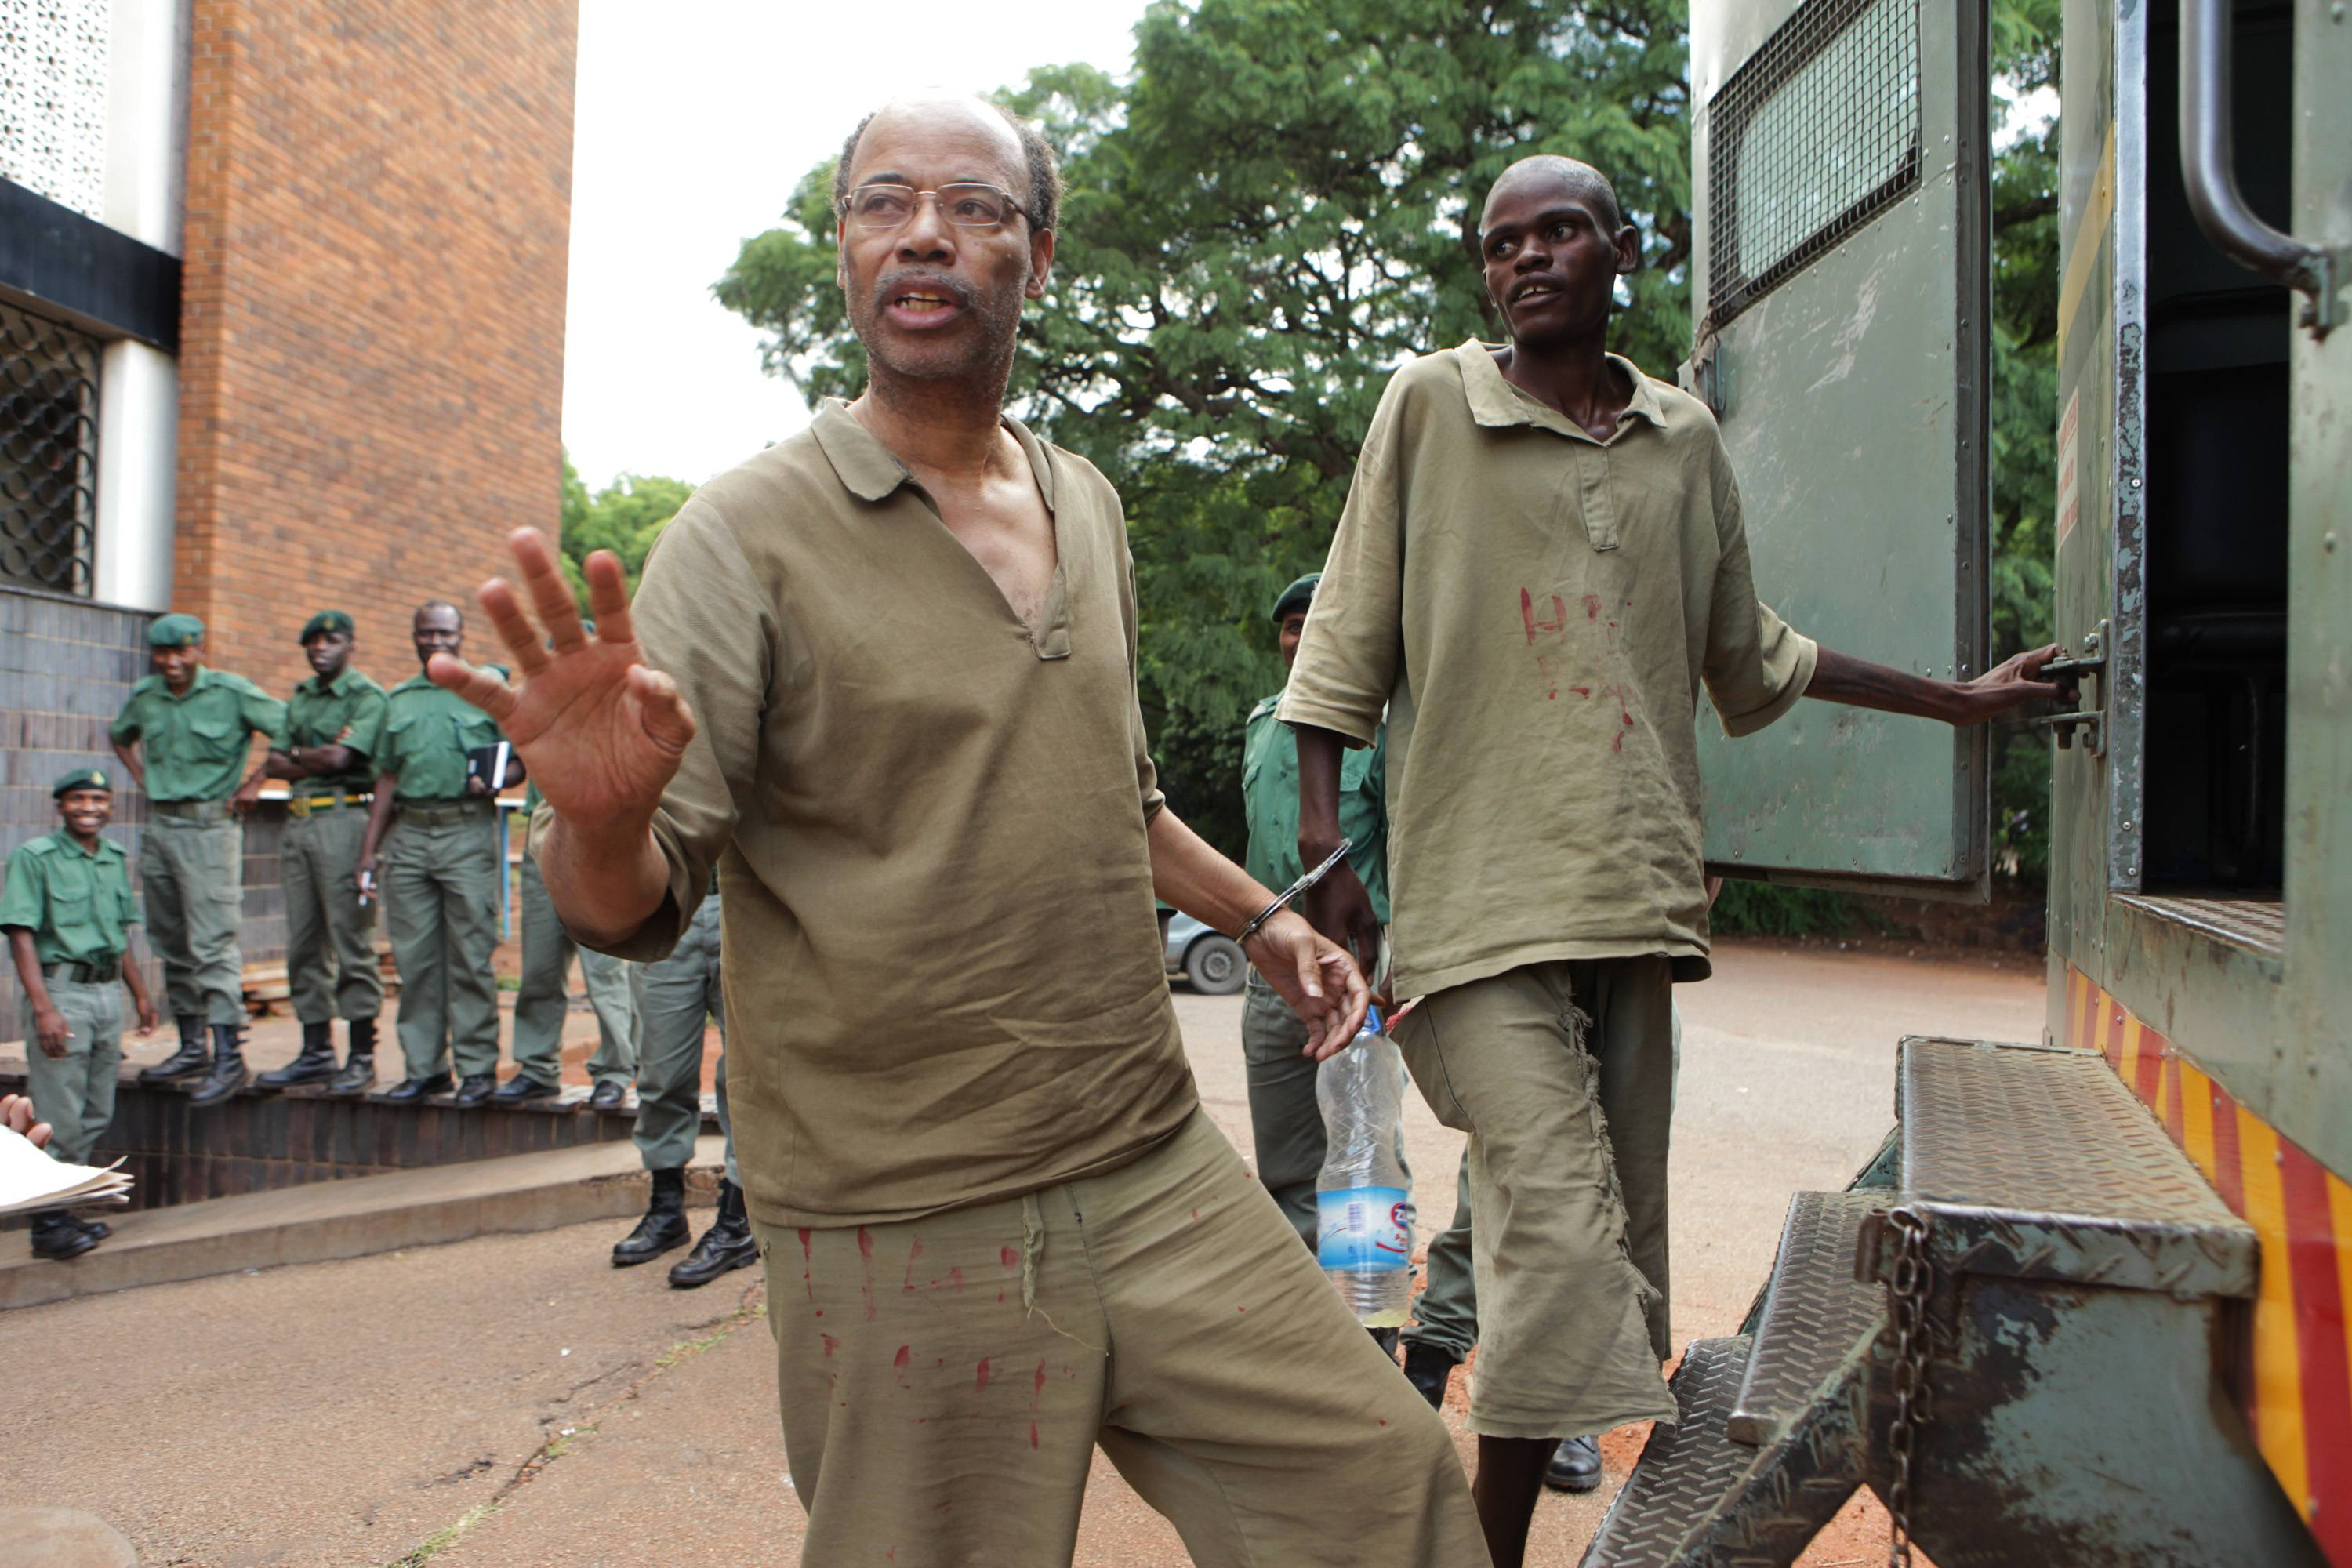 Former Congressman Mel Reynolds, center left, prepares to enter a prison truck while handcuffed after his court appearance Thursday in Harare, Zimbabwe. Reynolds was arrested on charges of possessing pornographic material and violating immigration laws.